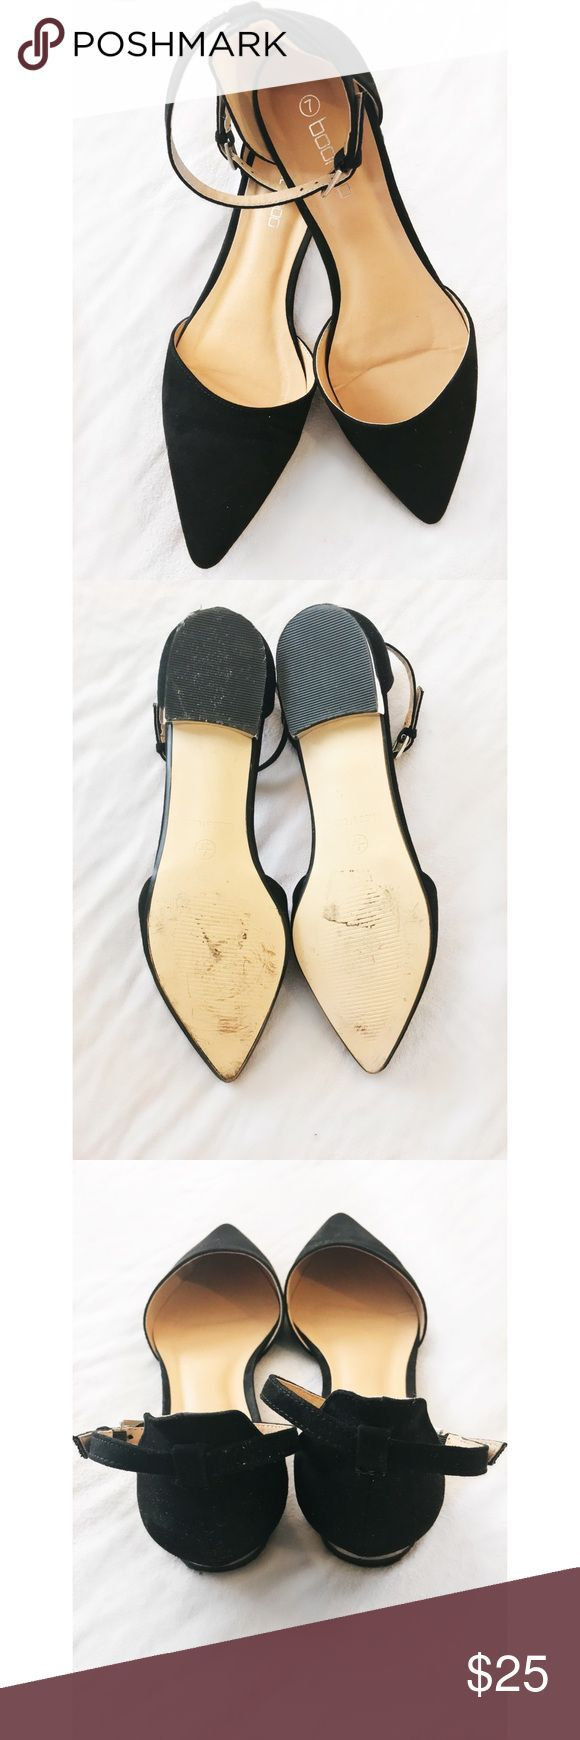 Tendance Chaussures 2017/ 2018 : Size 9 flats pointy toe with strap Worn once to a wedding. Comfortable and styli